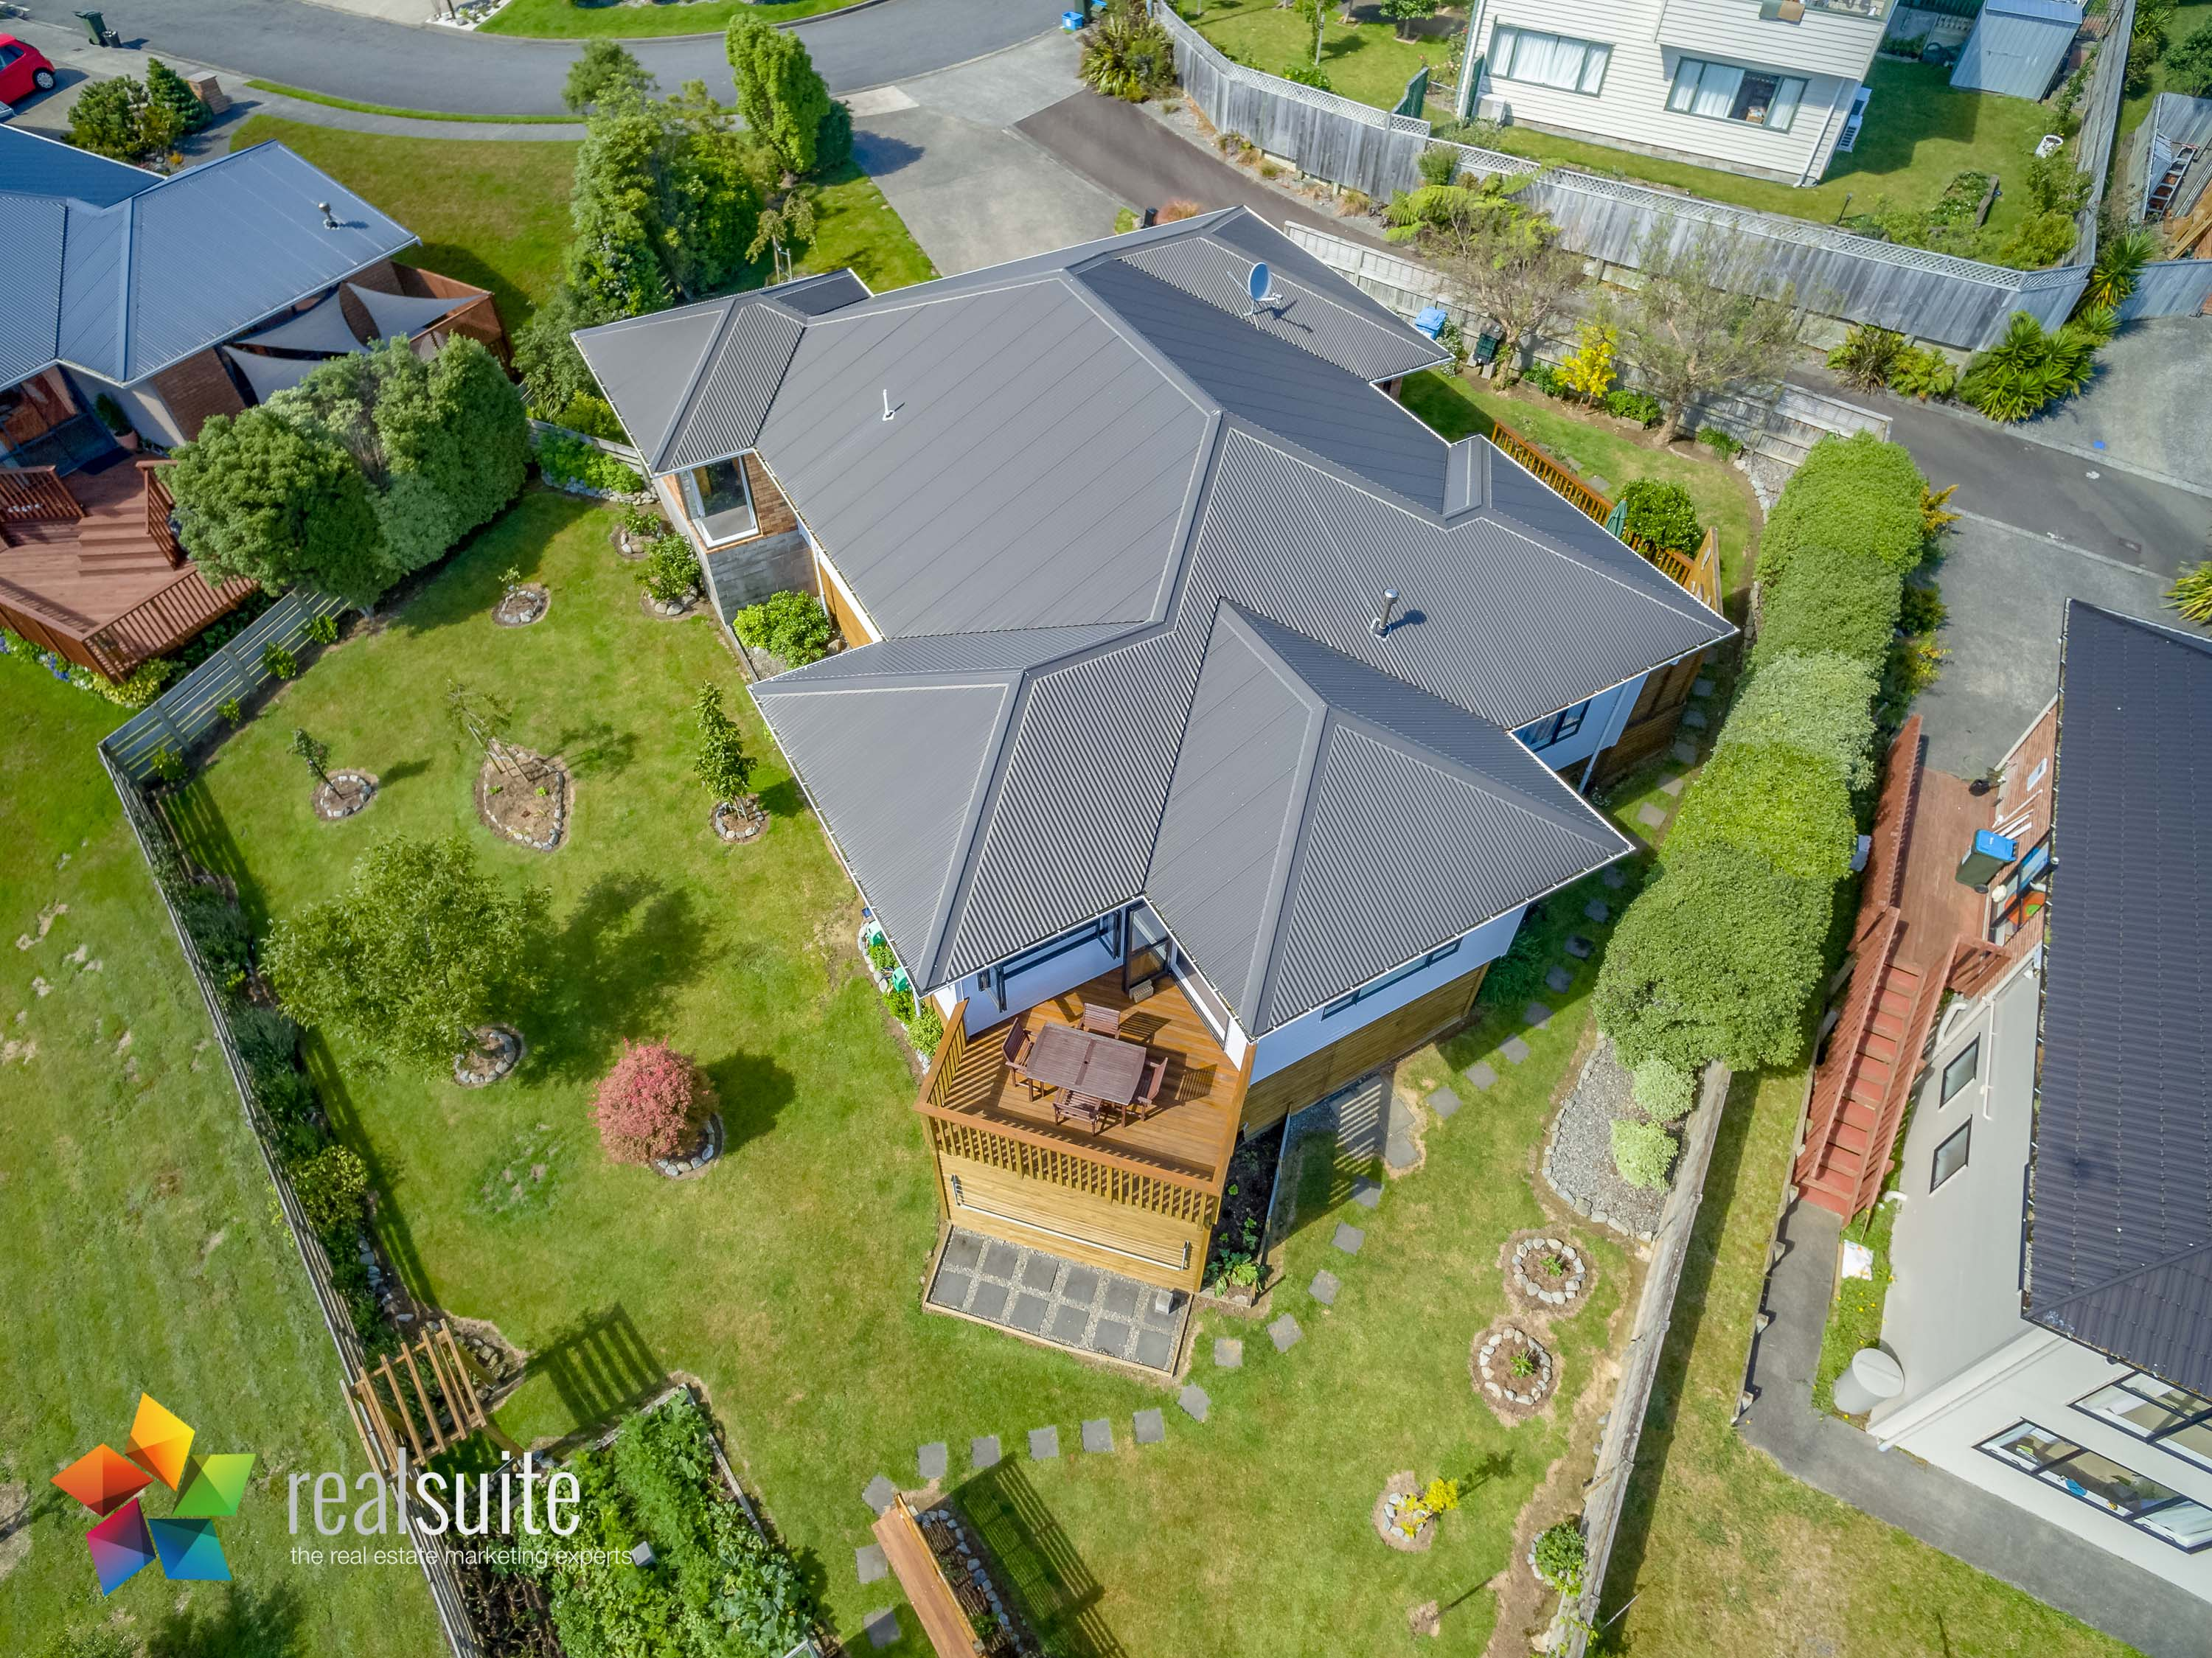 9 McEwen Crescent, Riverstone Terraces Aerial 0391